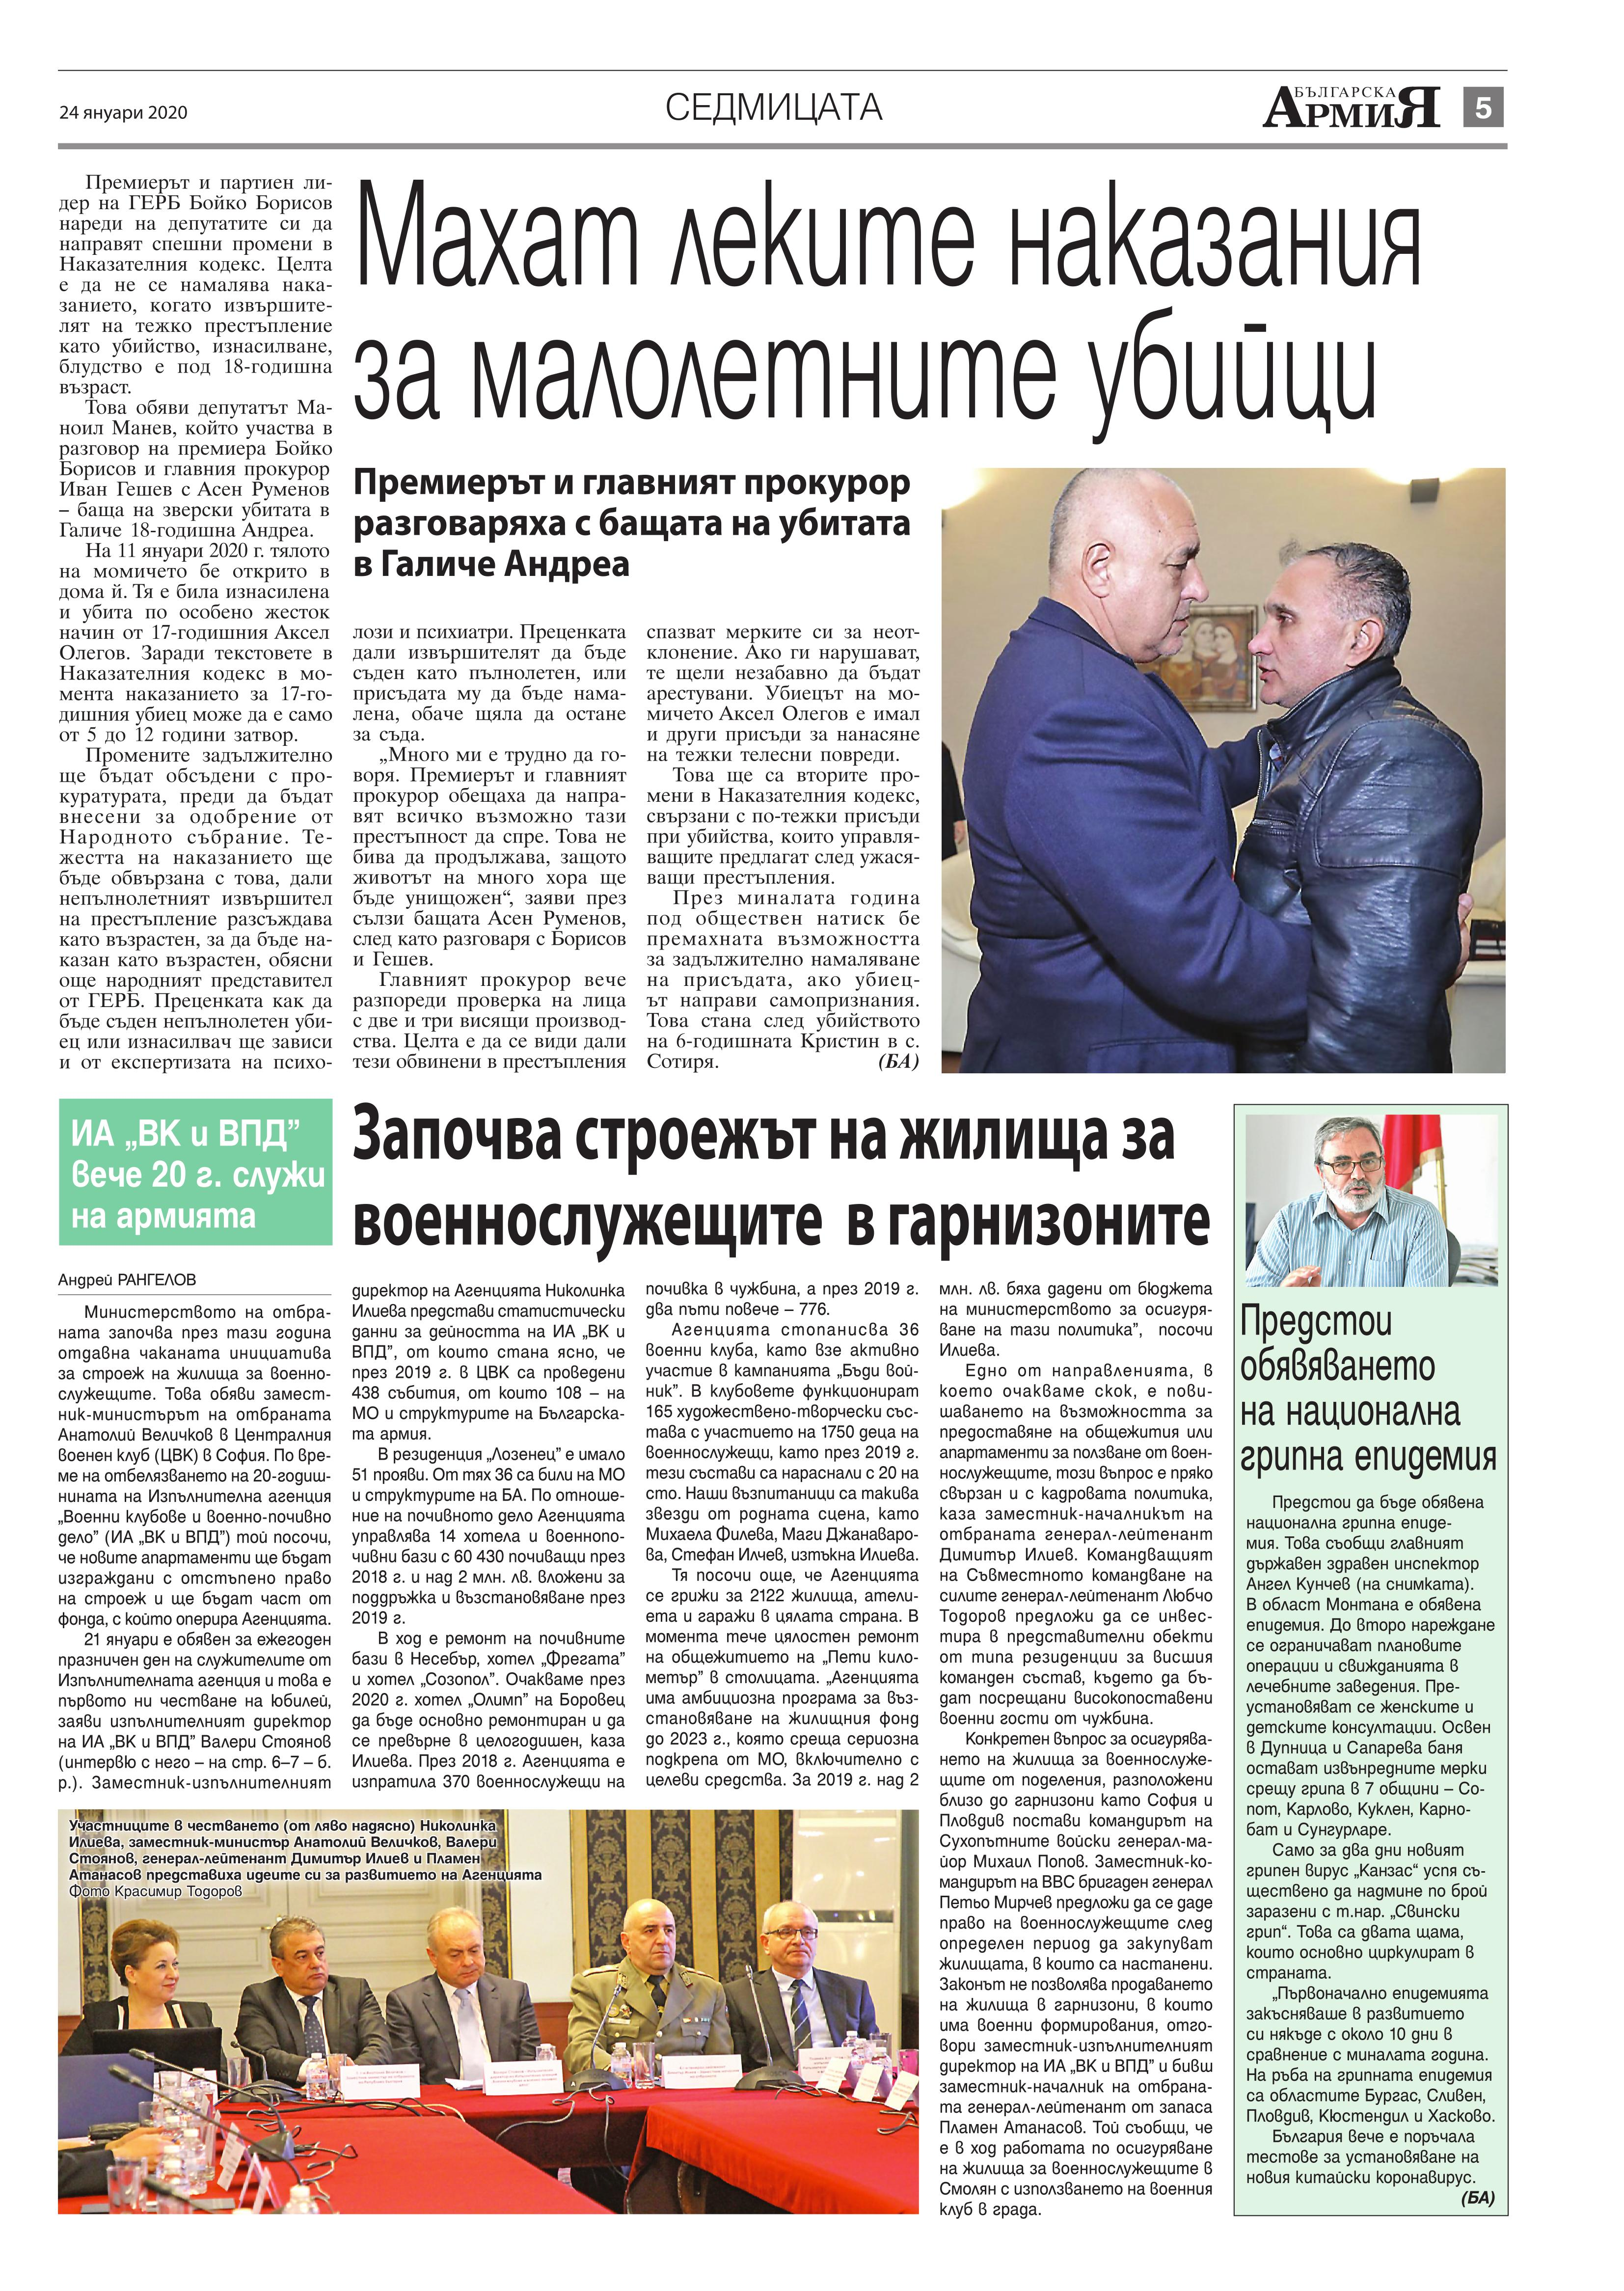 https://www.armymedia.bg/wp-content/uploads/2015/06/05.page1_-120.jpg